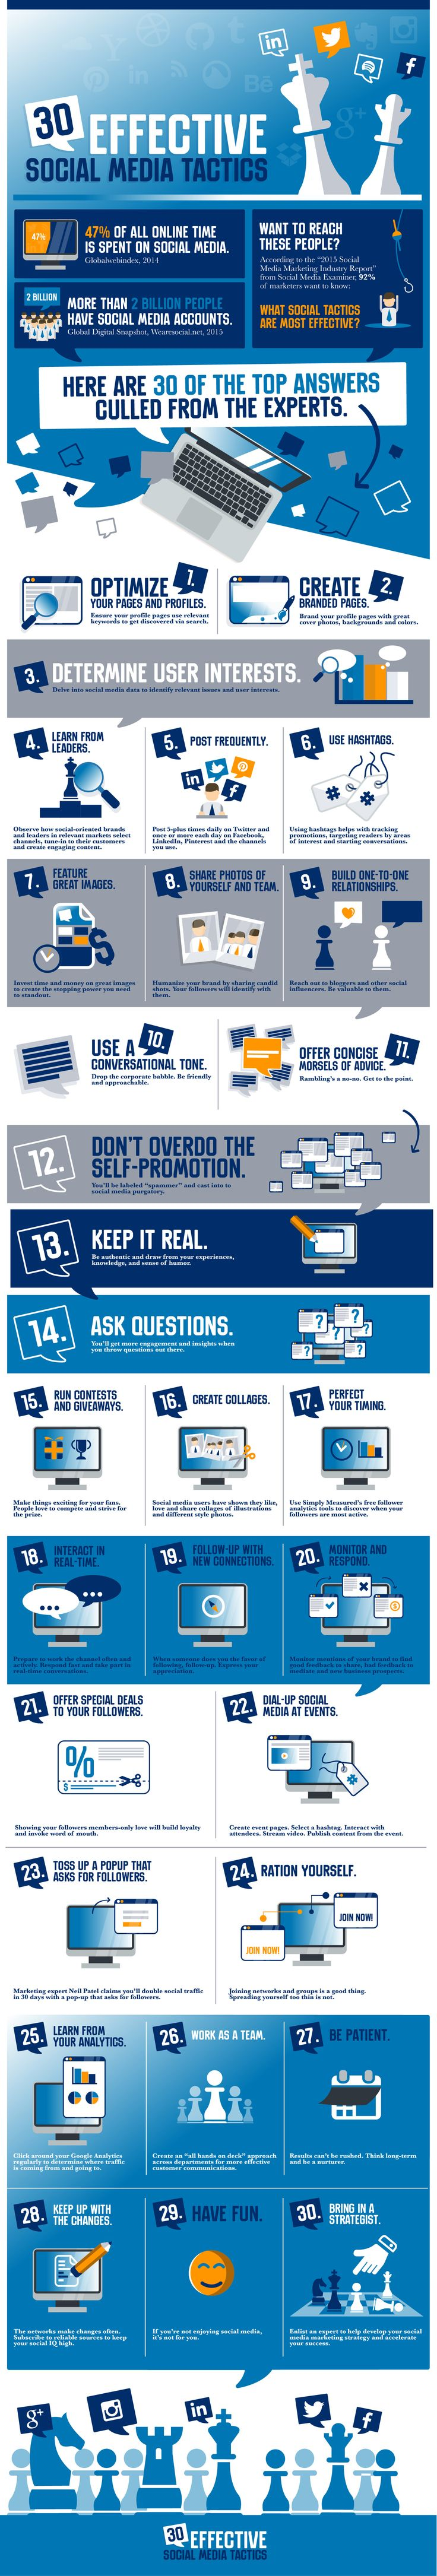 30 Killer Tips to Become a Master Social Media Manager [Infographic] - @b2community